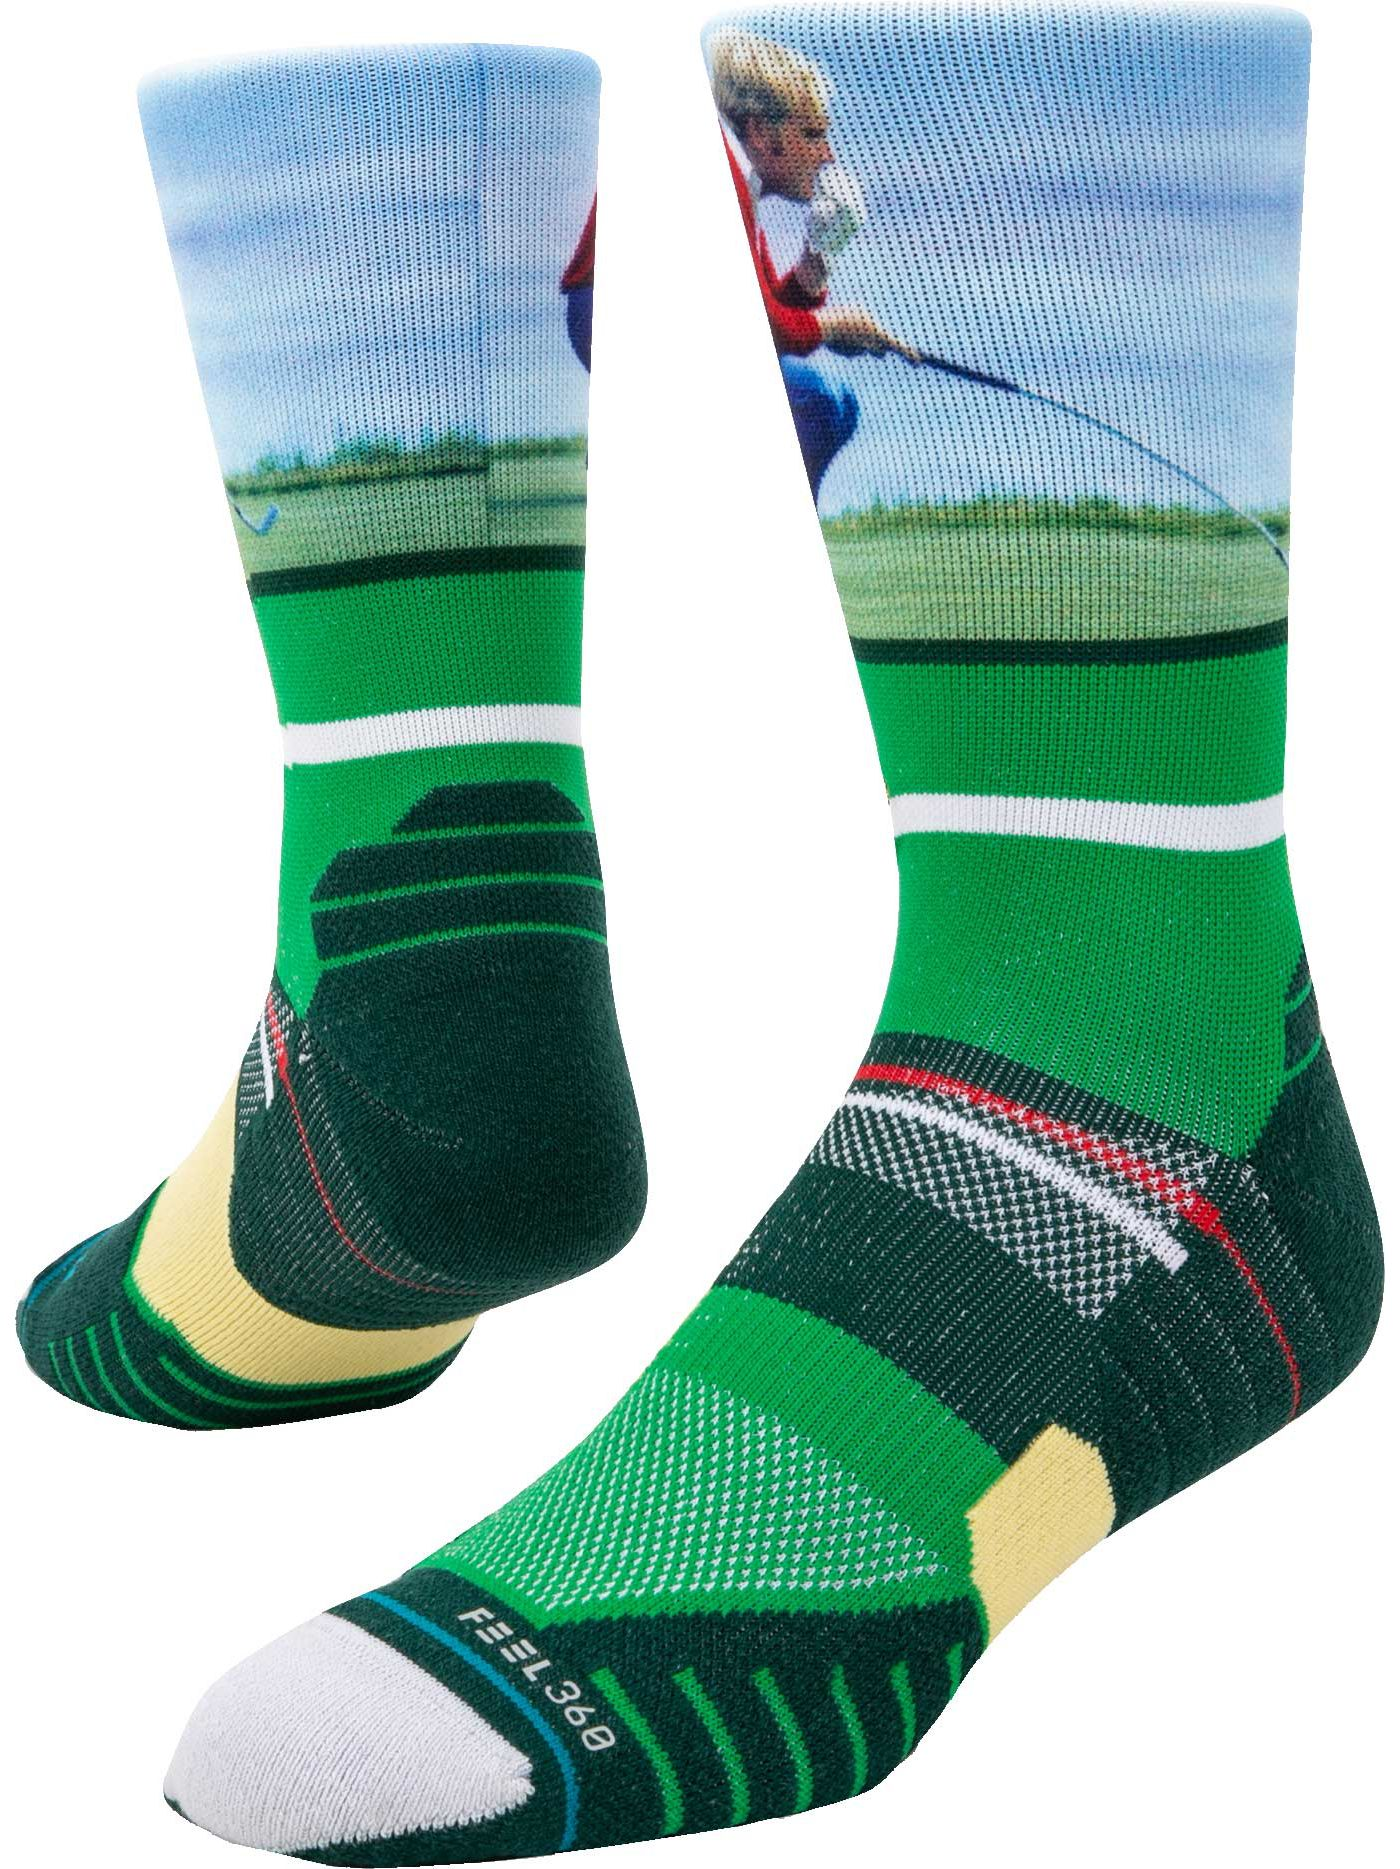 Stance Men's Jack Nicklaus Crew Socks